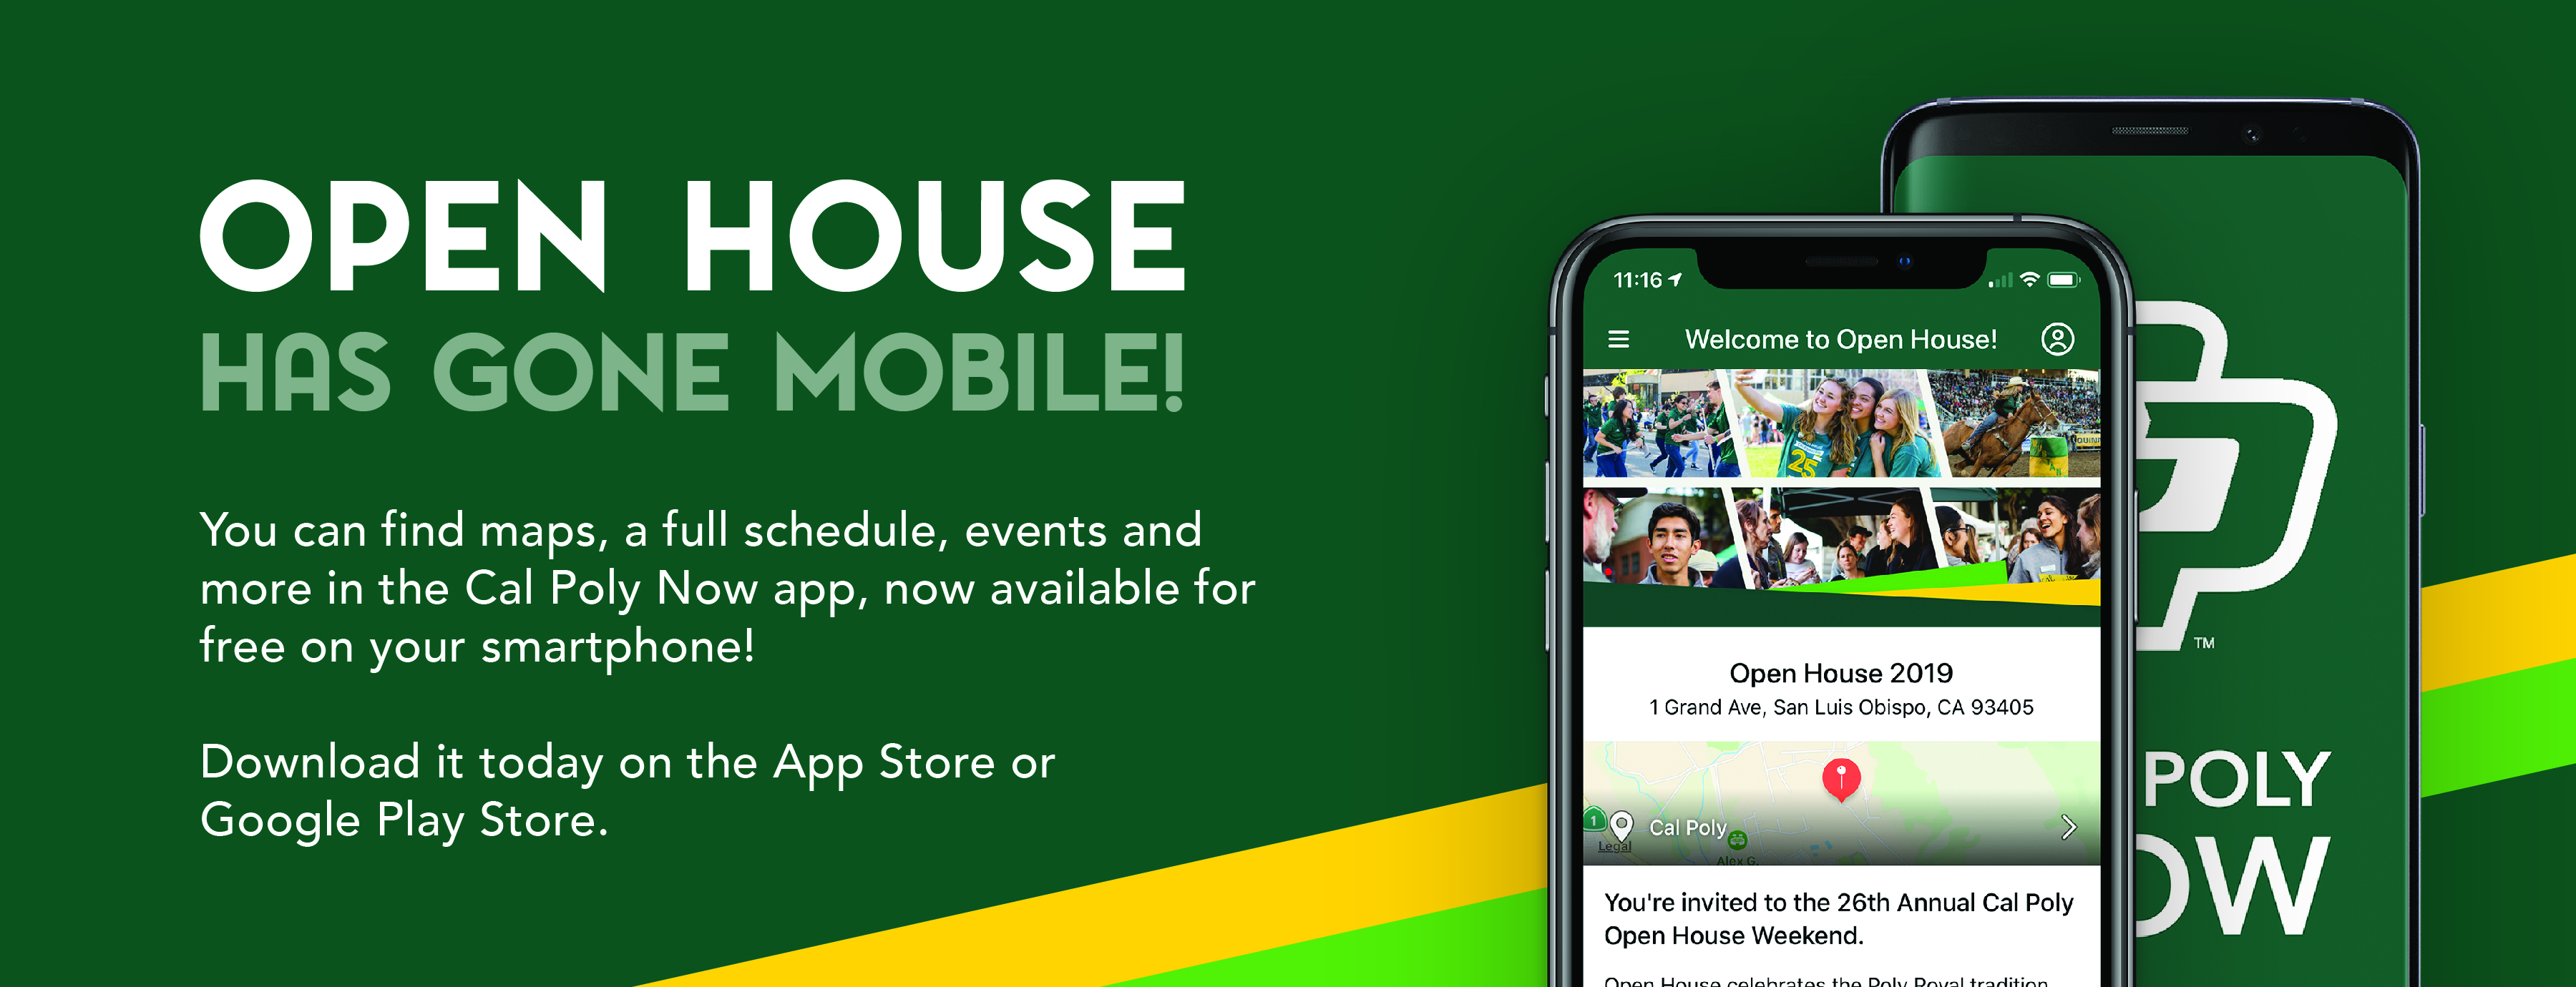 Download the Open House Guide on your smartphone!